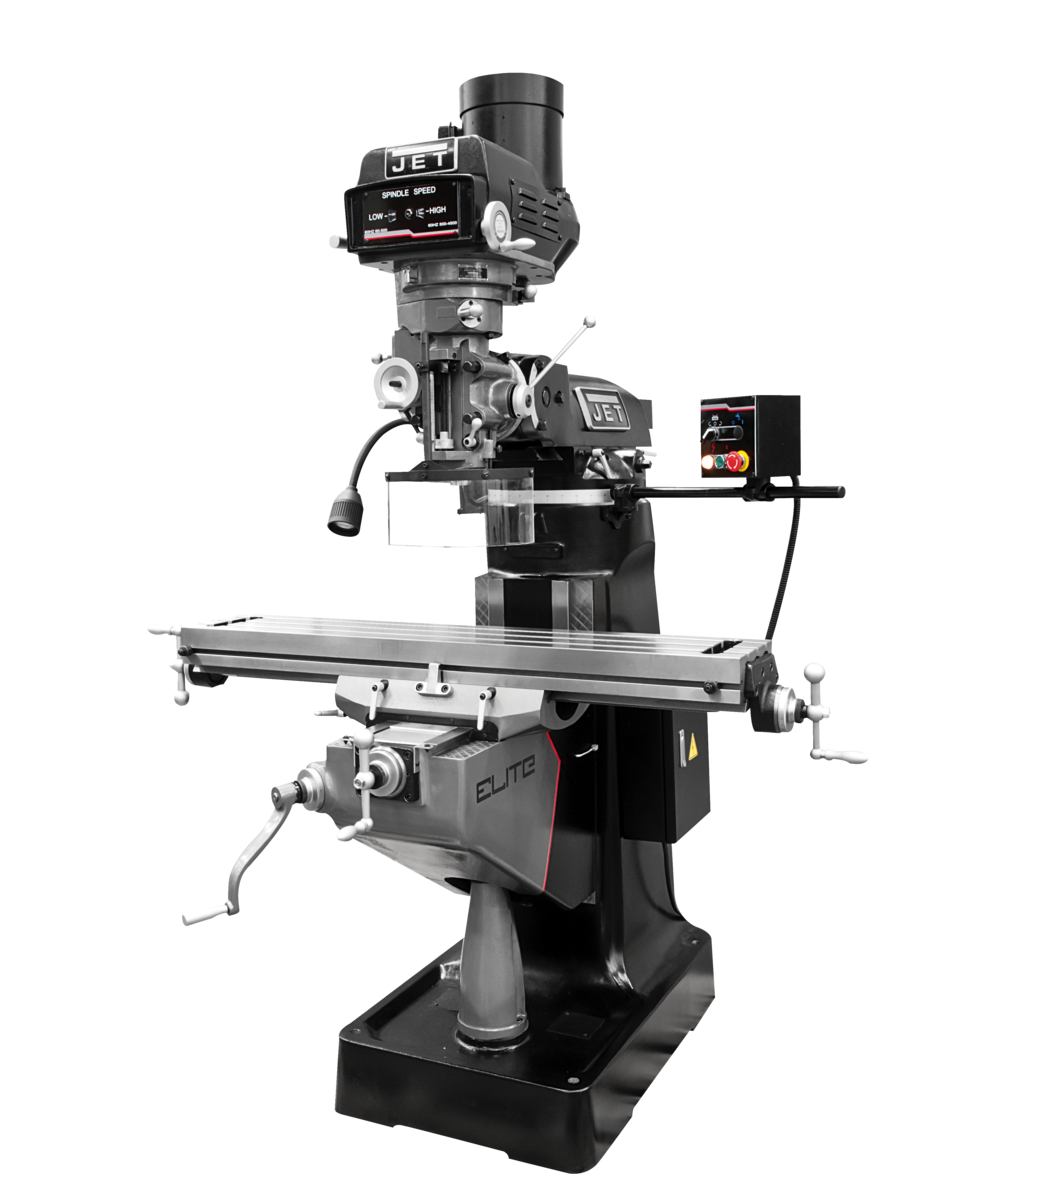 ETM-949 Mill with 3-Axis ACU-RITE 303 (Knee) DRO and Servo X, Y-Axis Powerfeeds